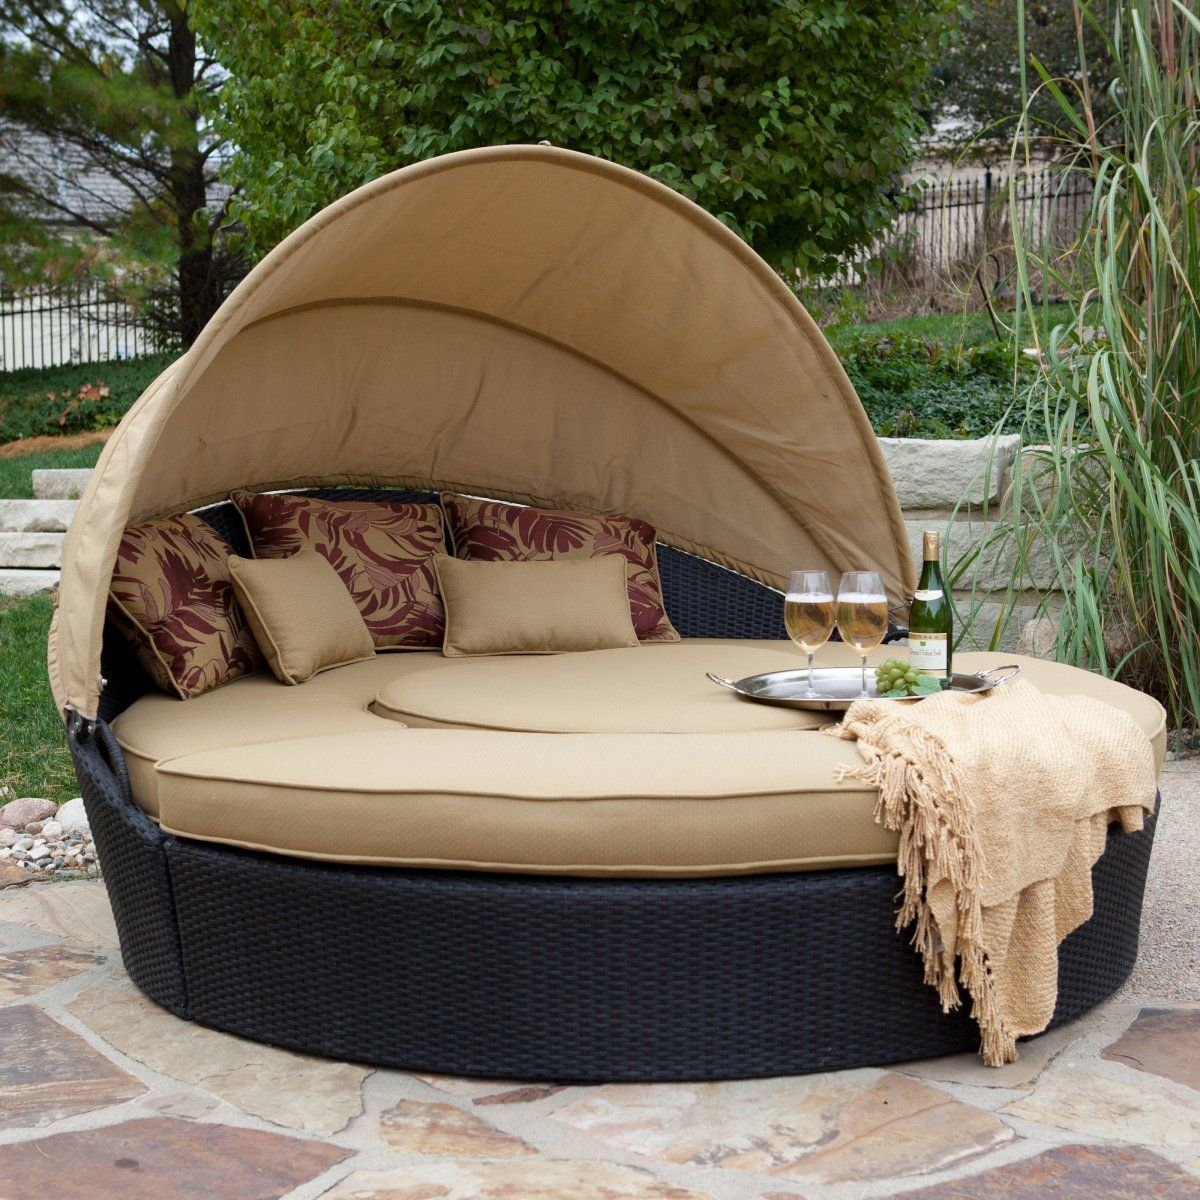 Rioja All Weather Wicker Sectional Daybed This Converts To Three Seating Sections With A